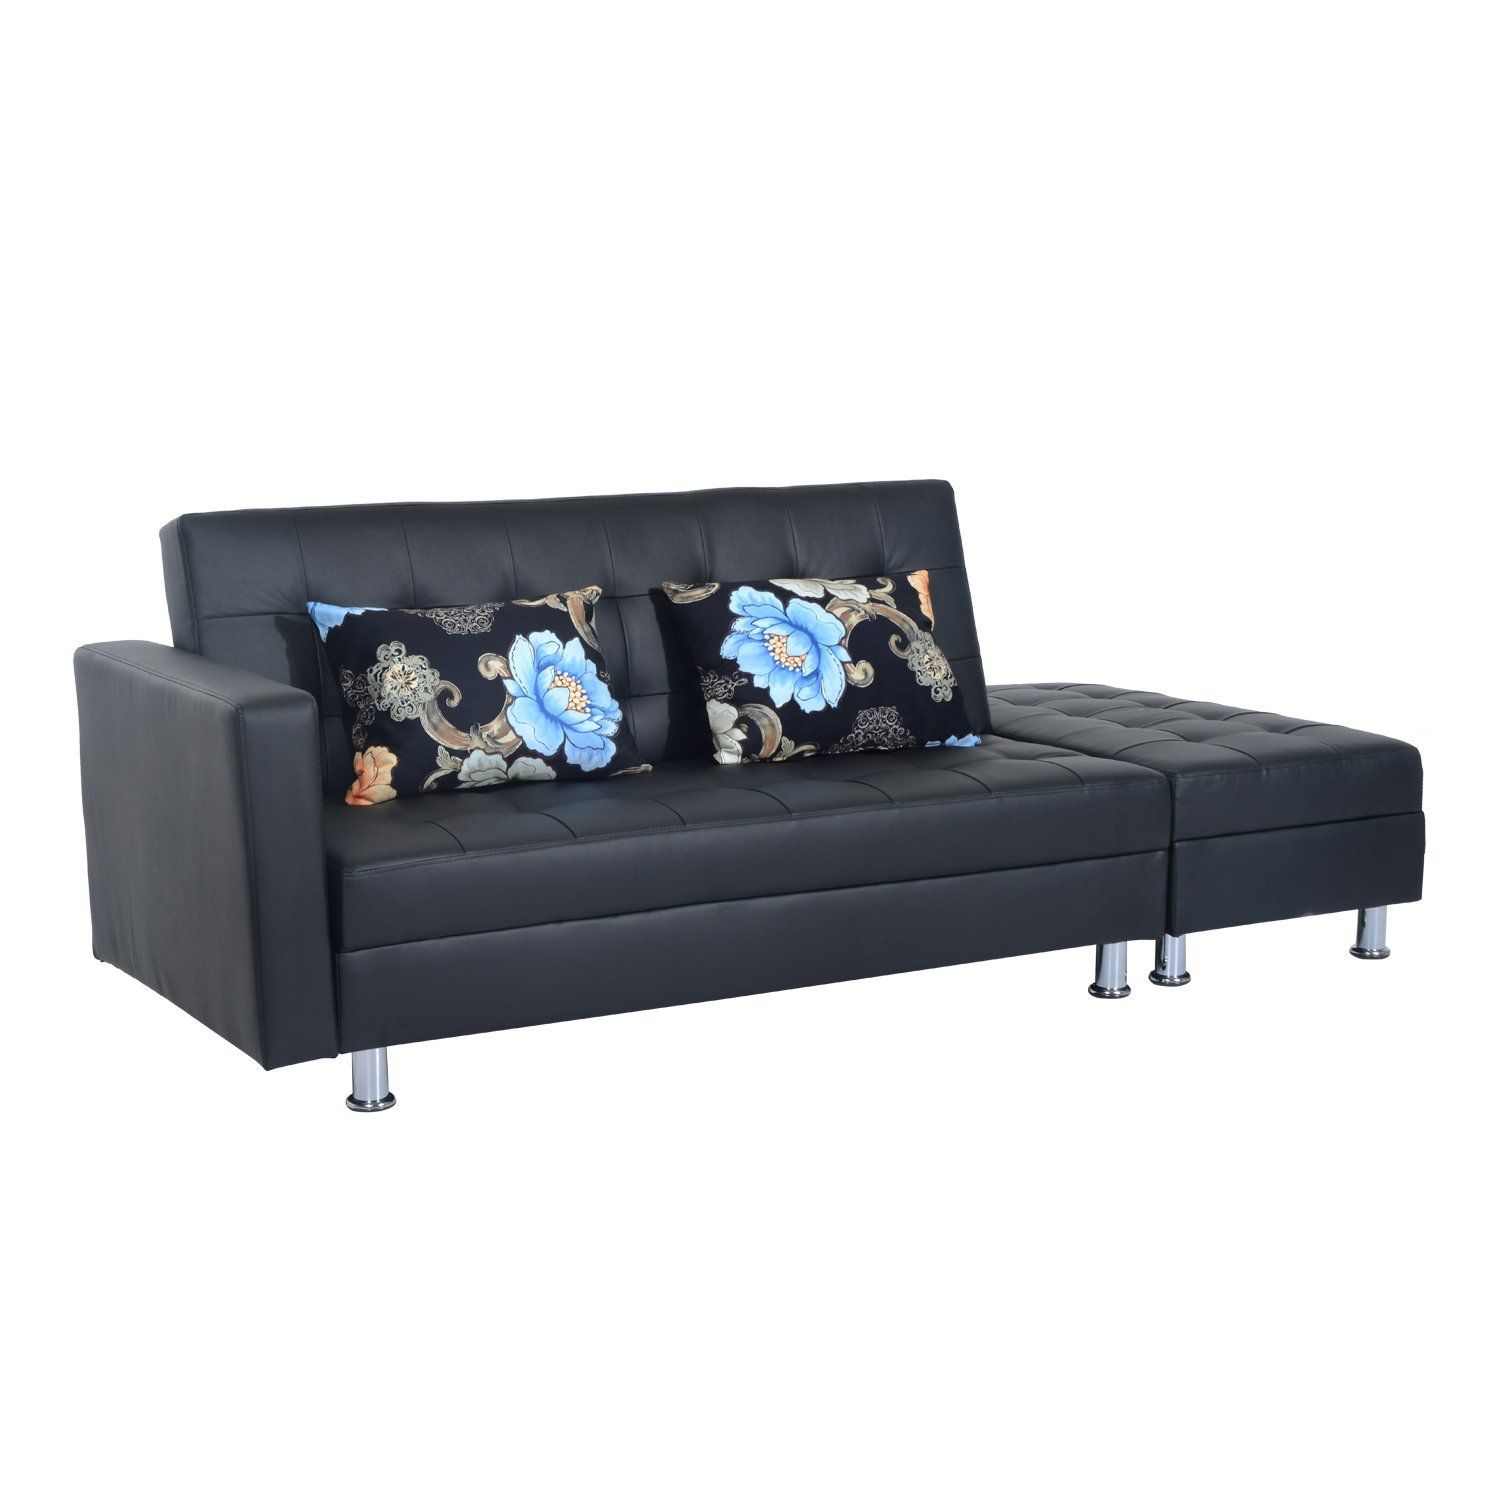 HomCom Faux Leather Convertible Sofa Sleeper Bed with Storage Ottoman -  Black